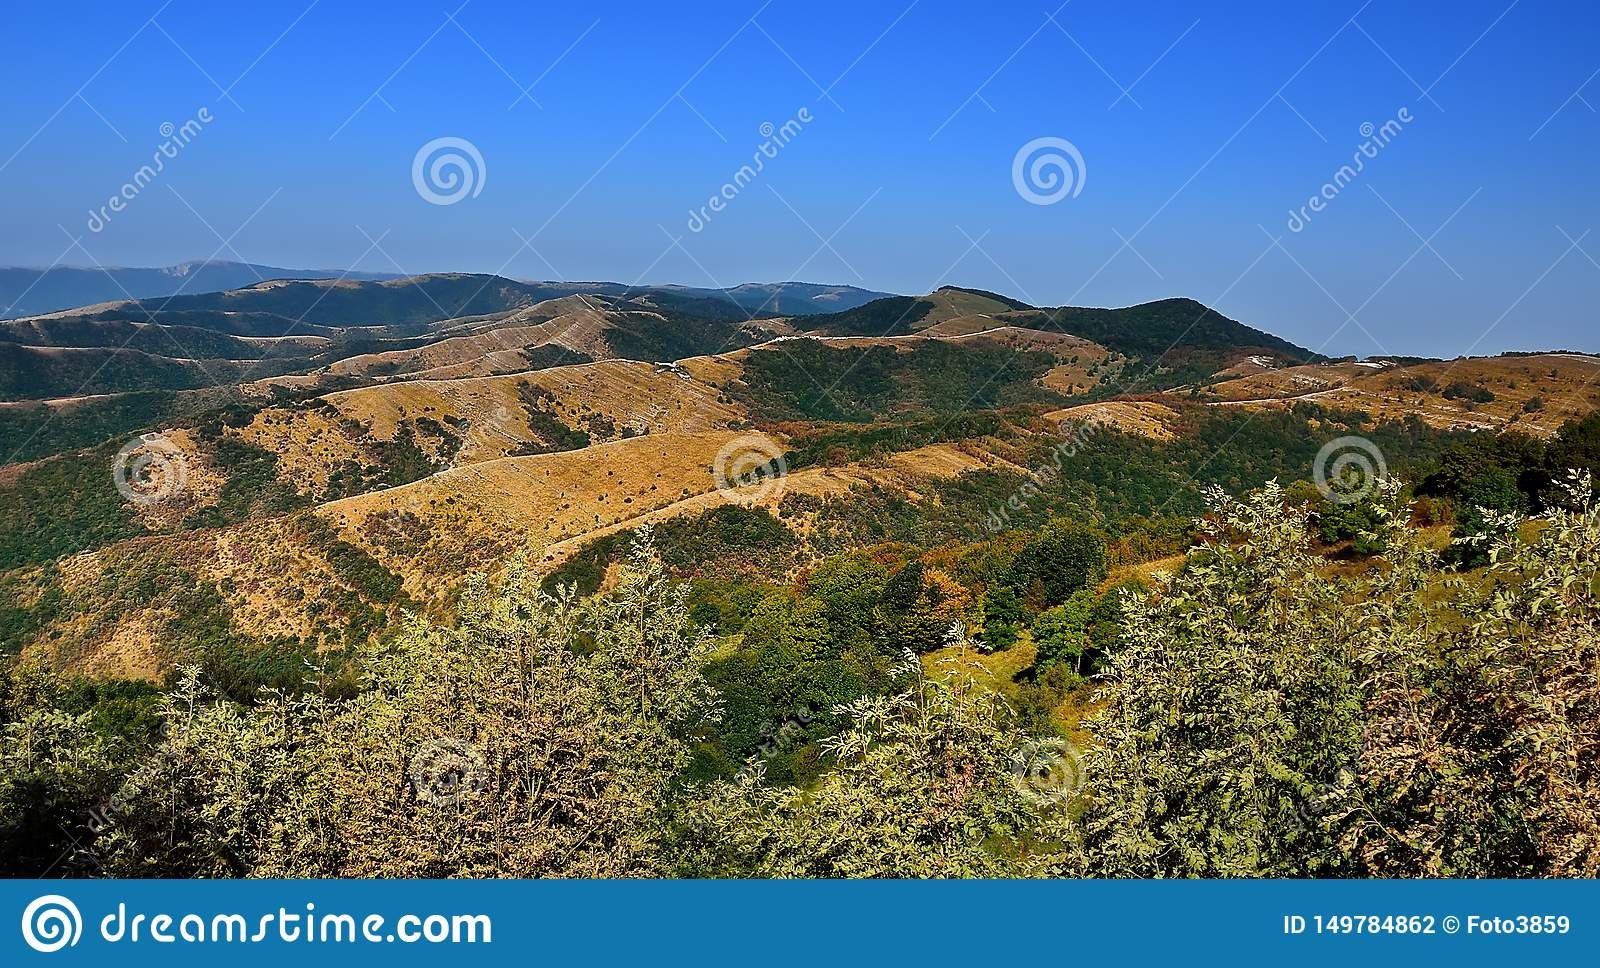 Panorama of mountains with blue sky in Russia Krasnodar region